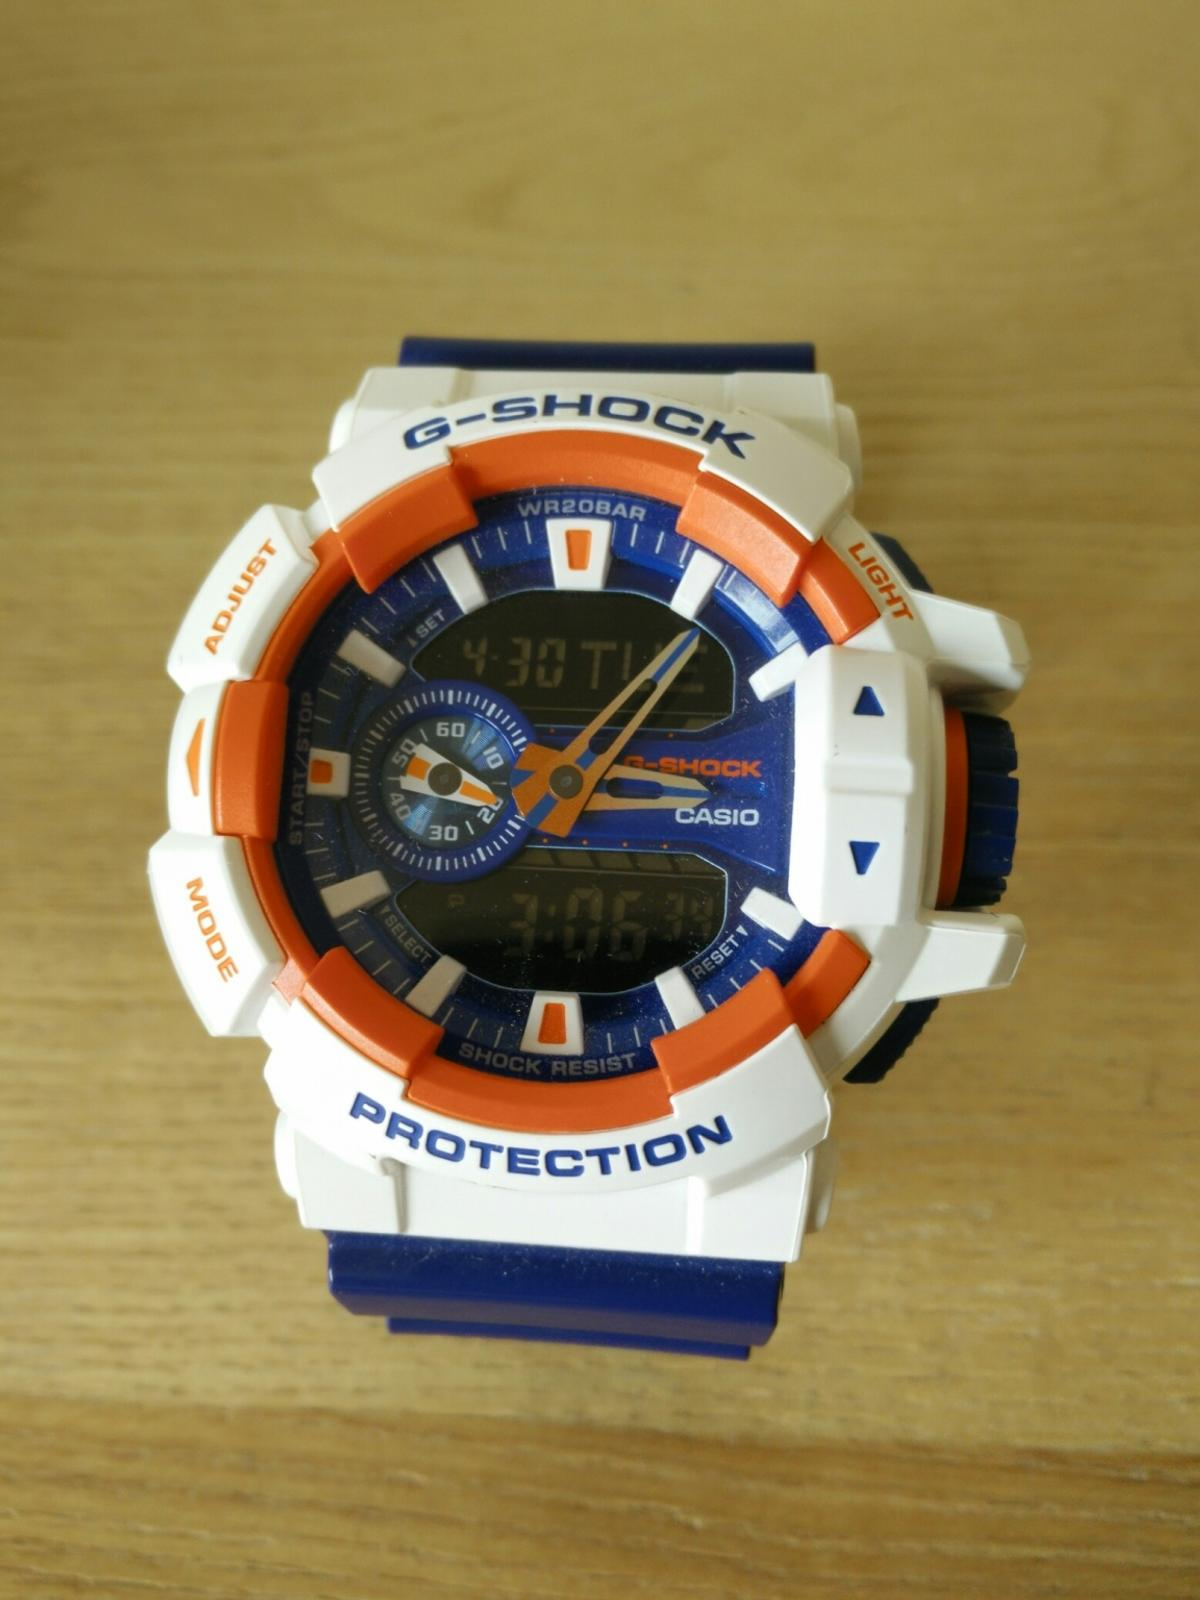 online store f1992 68c28 g shock watch 5398 ga400cs mens